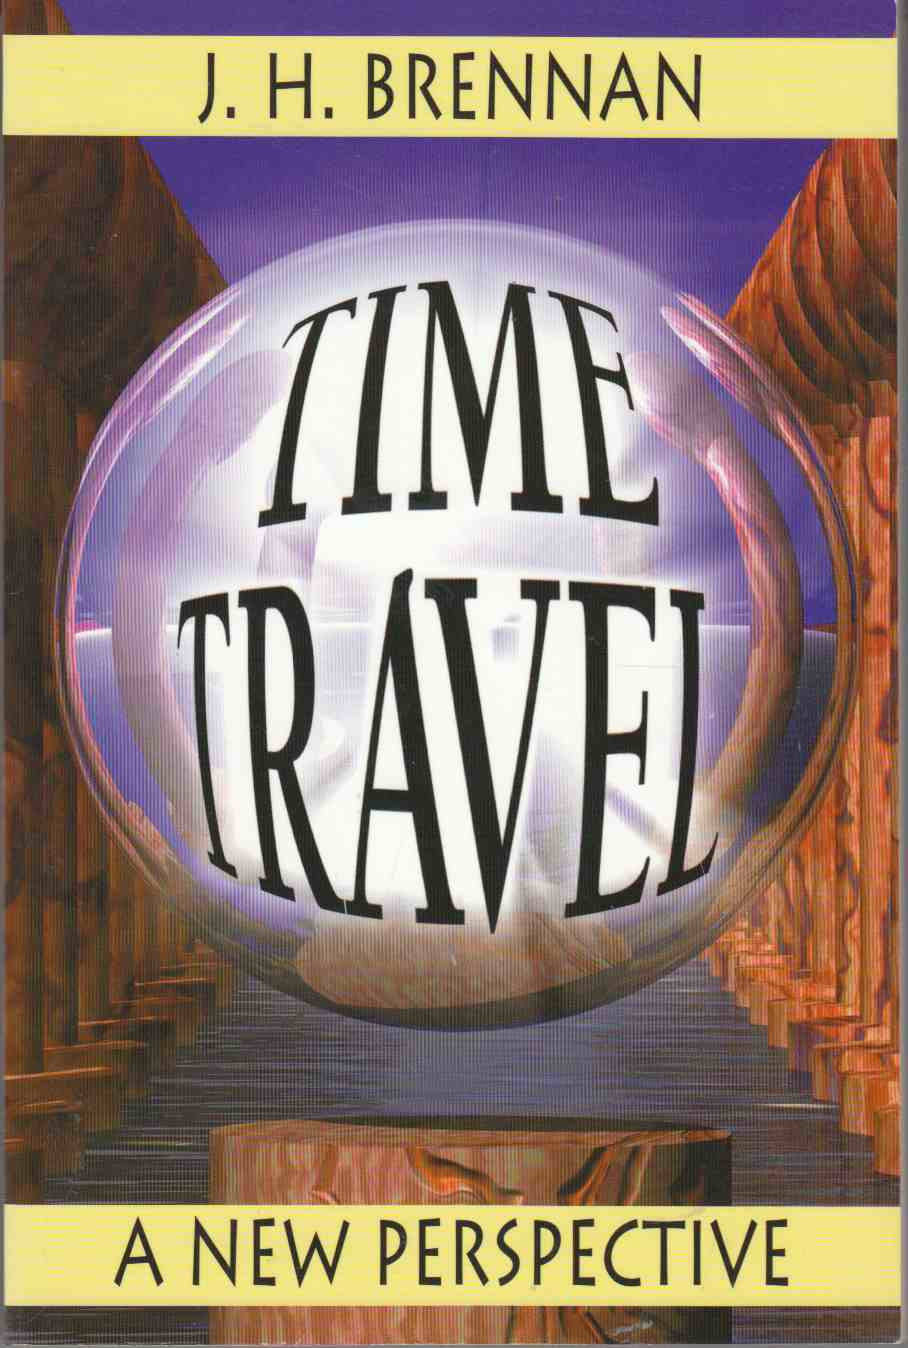 Image for Time Travel A New Perspective